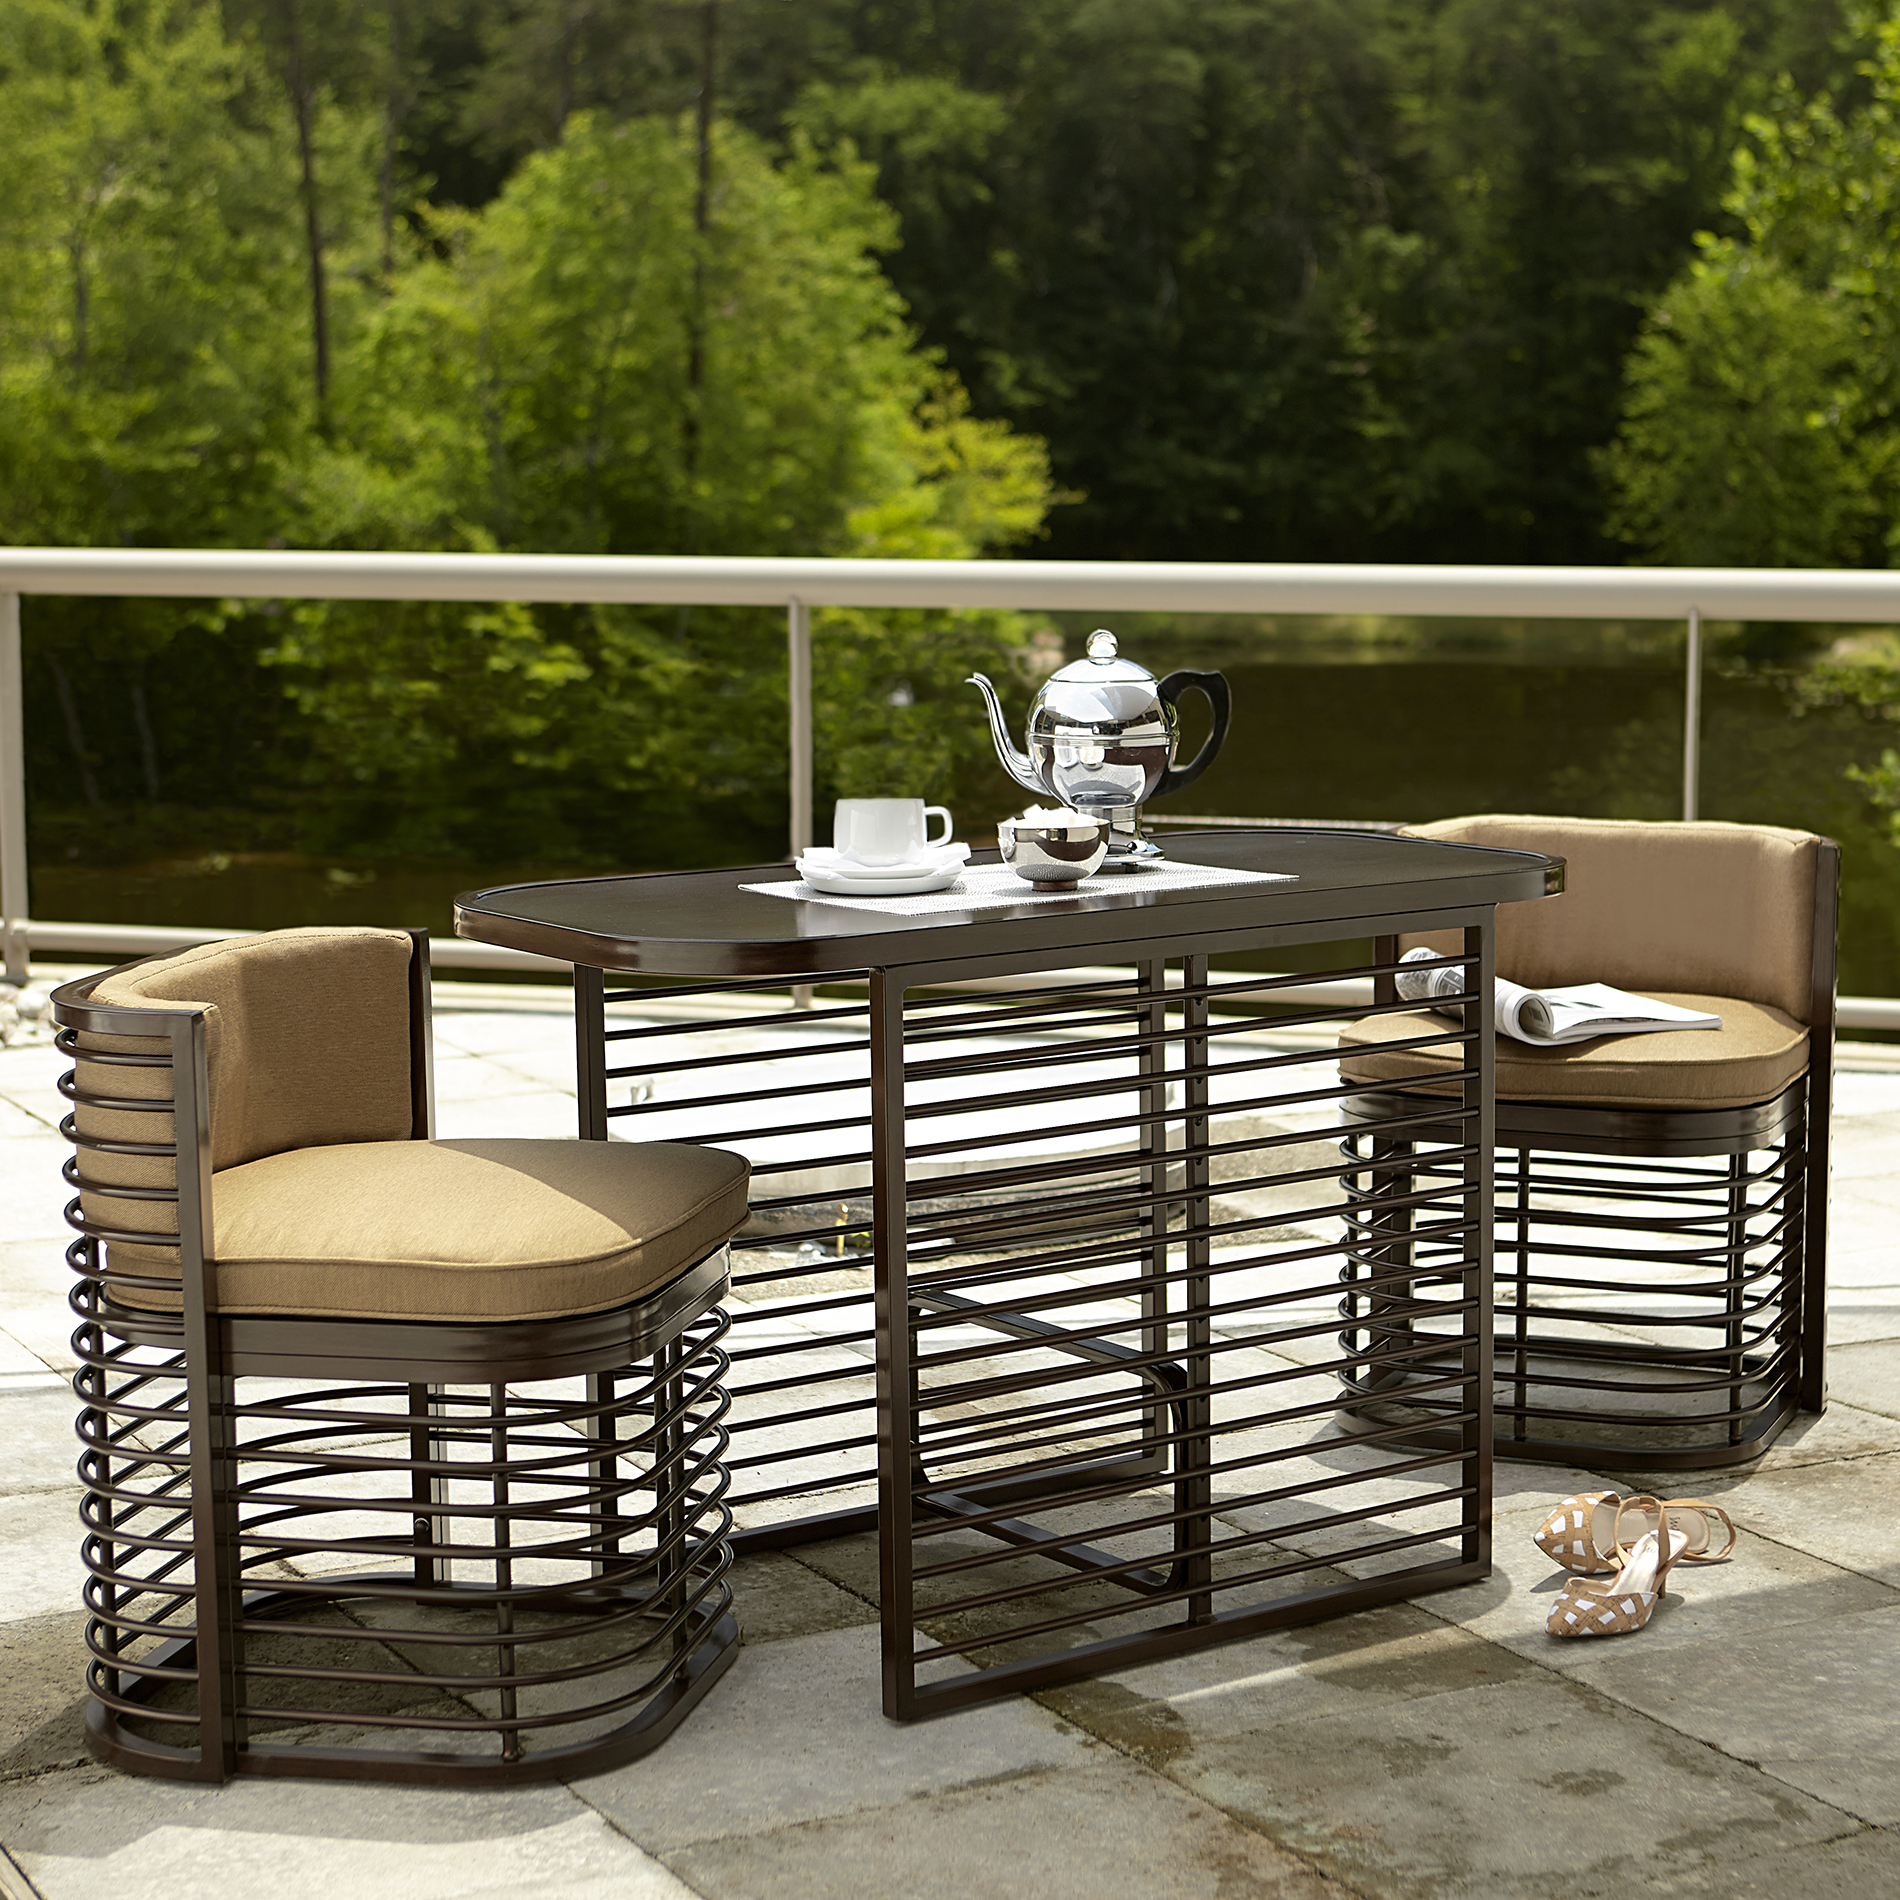 3 piece outdoor table and chairs swing for outdoors grand resort perdido beach nesting bistro set -neutral